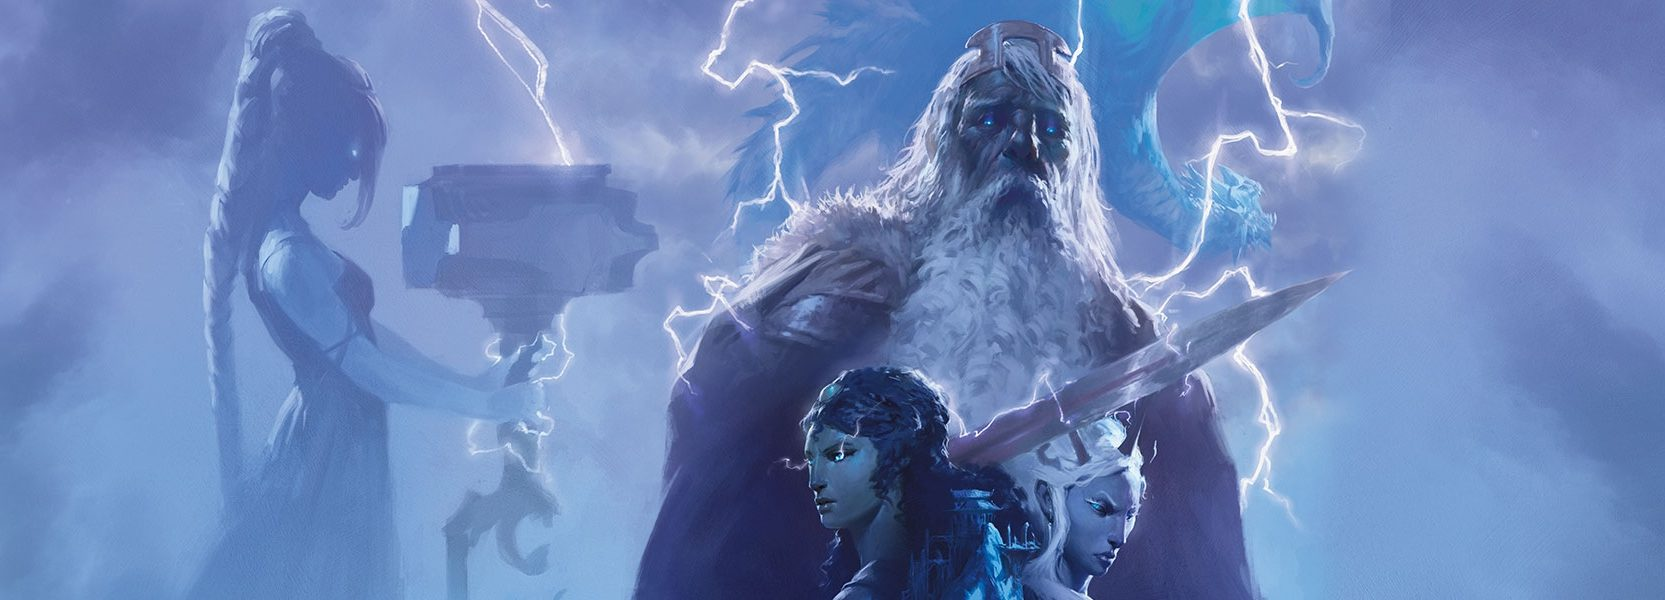 StormKingsThunder_header